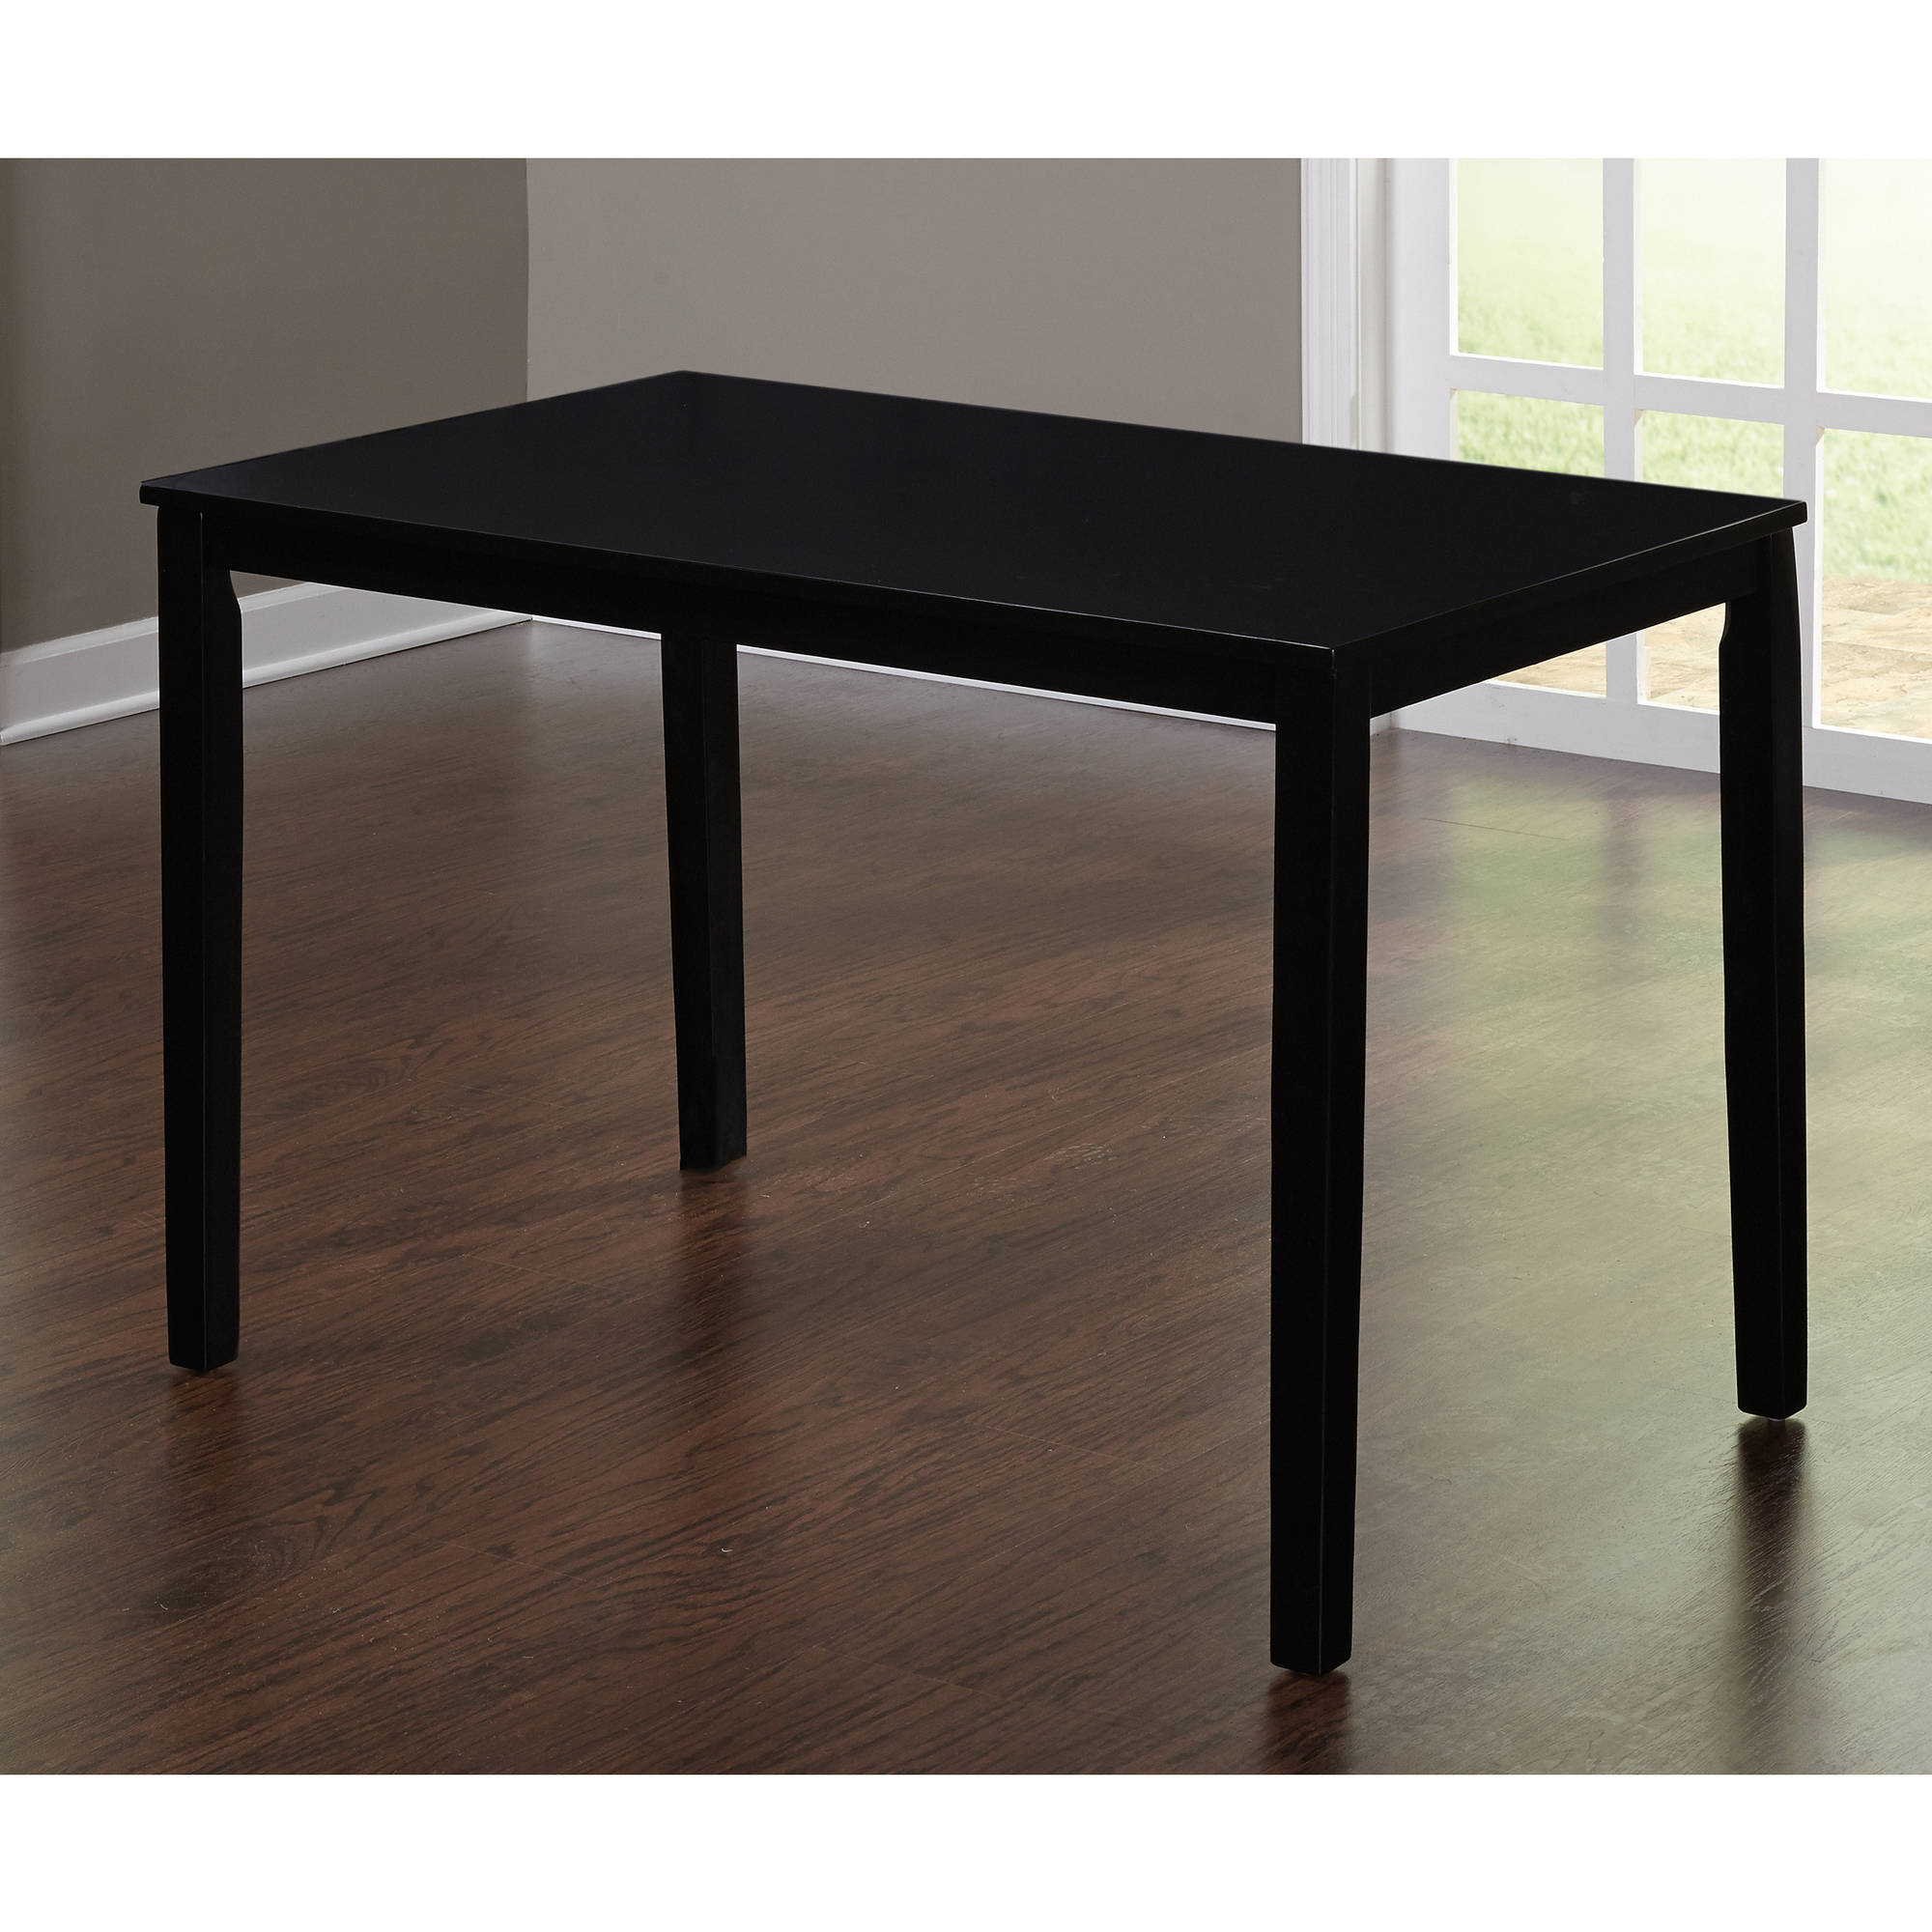 Contemporary Dining Table, Espresso - Walmart.com